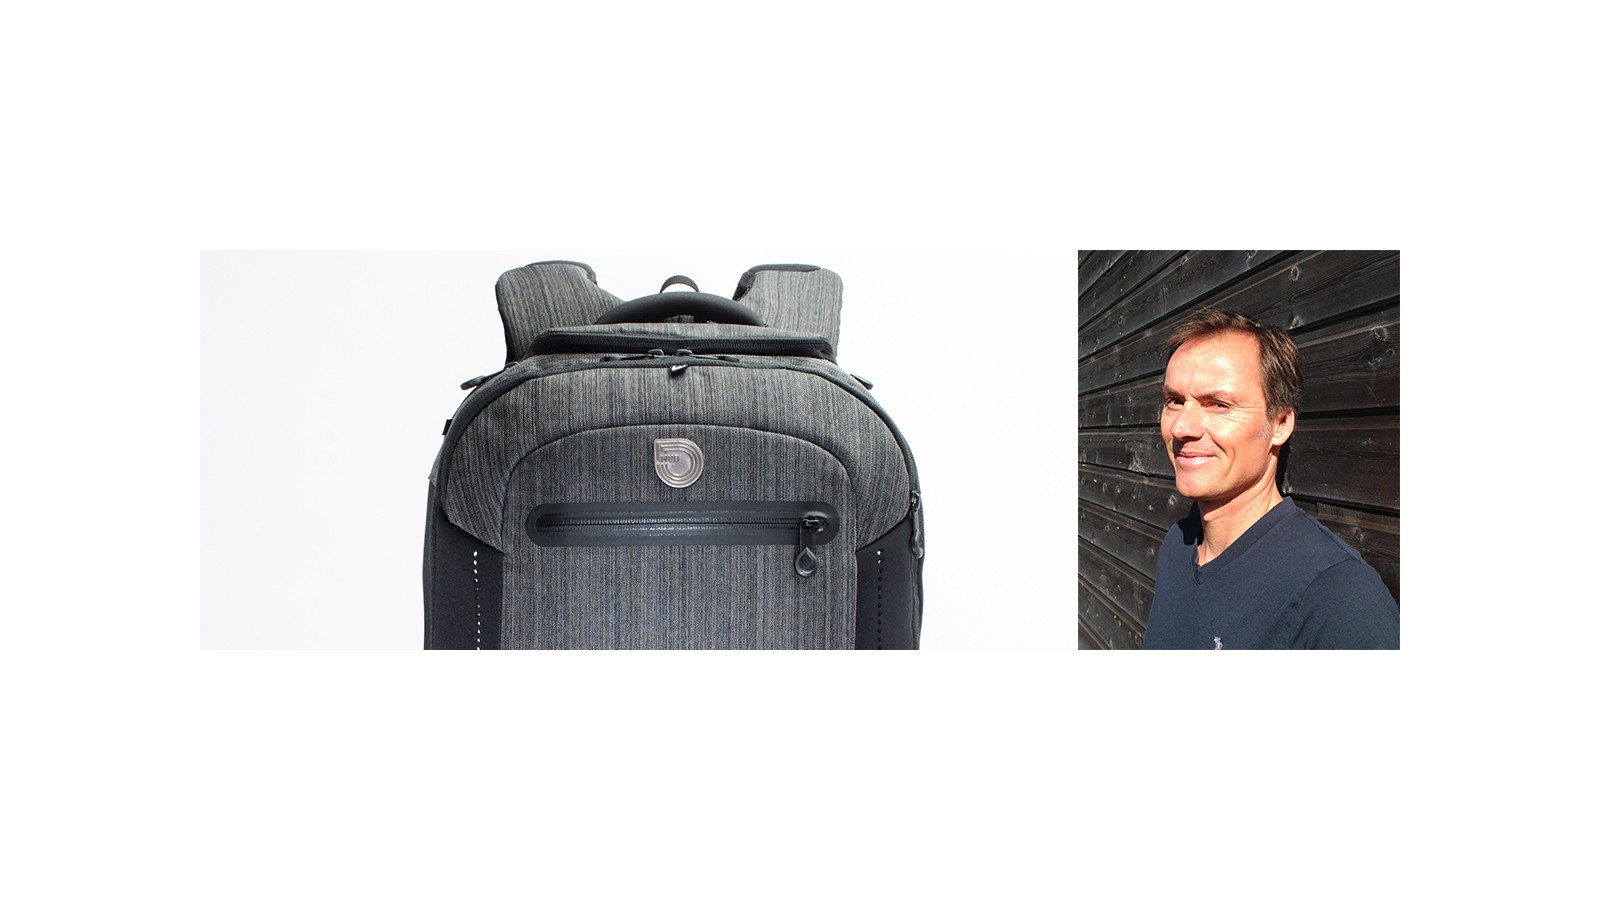 Les origines de My Utility Bag: Recontrez Andy Gugenheimer